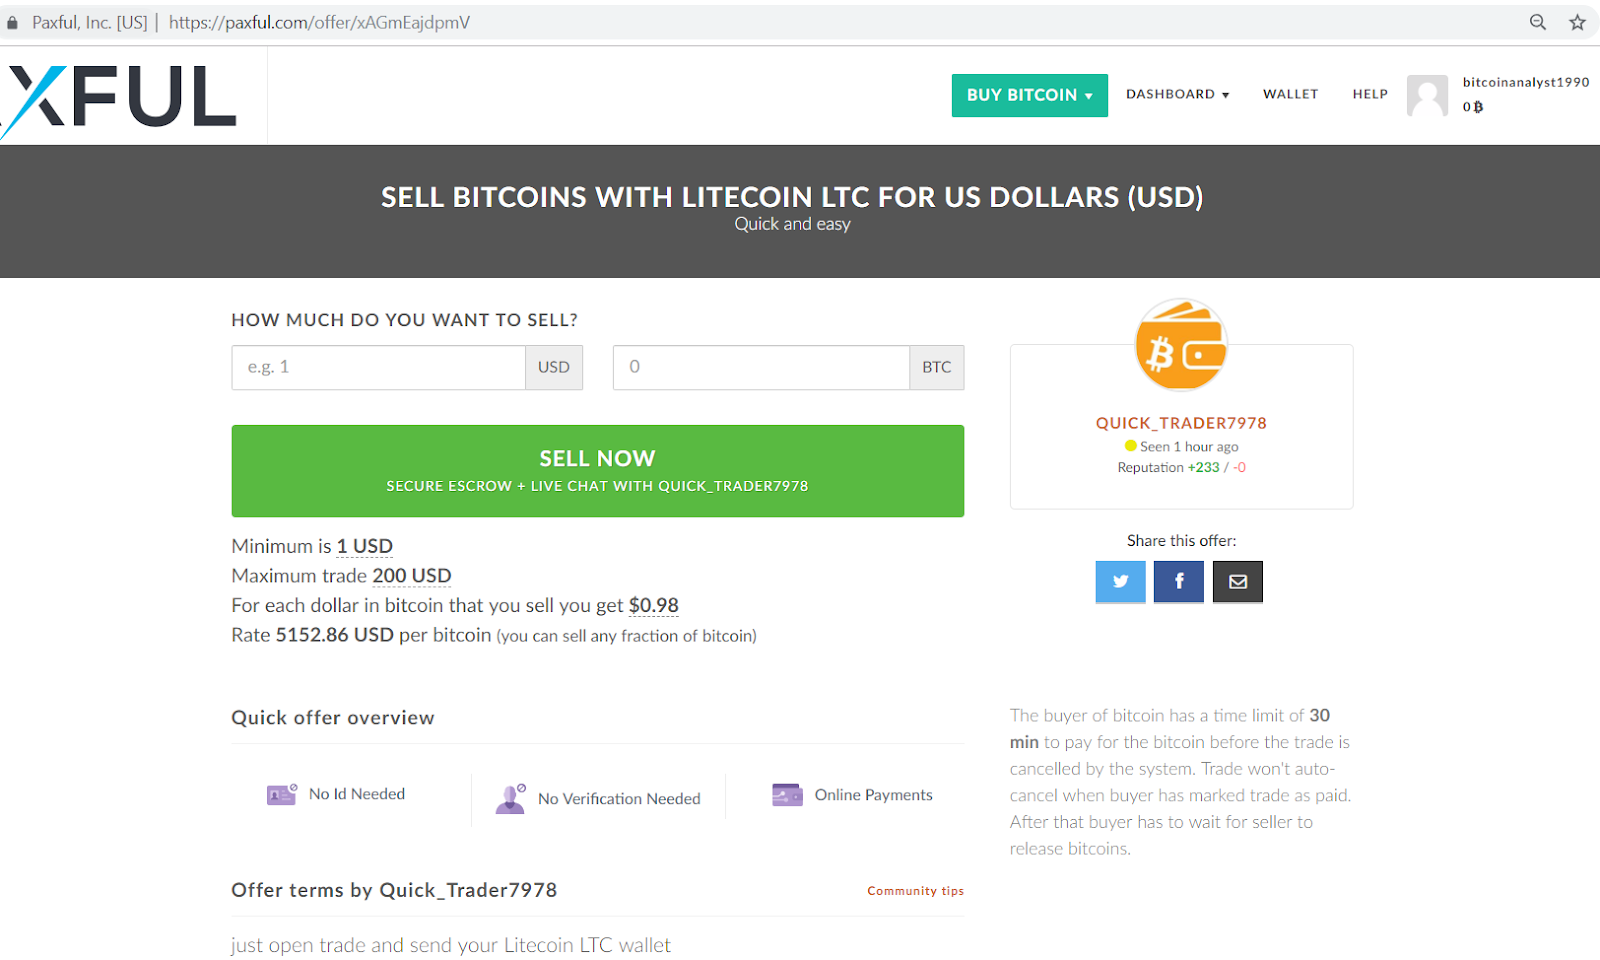 Paxful sell bitcoins with Litecoin LTC for US dollars page.